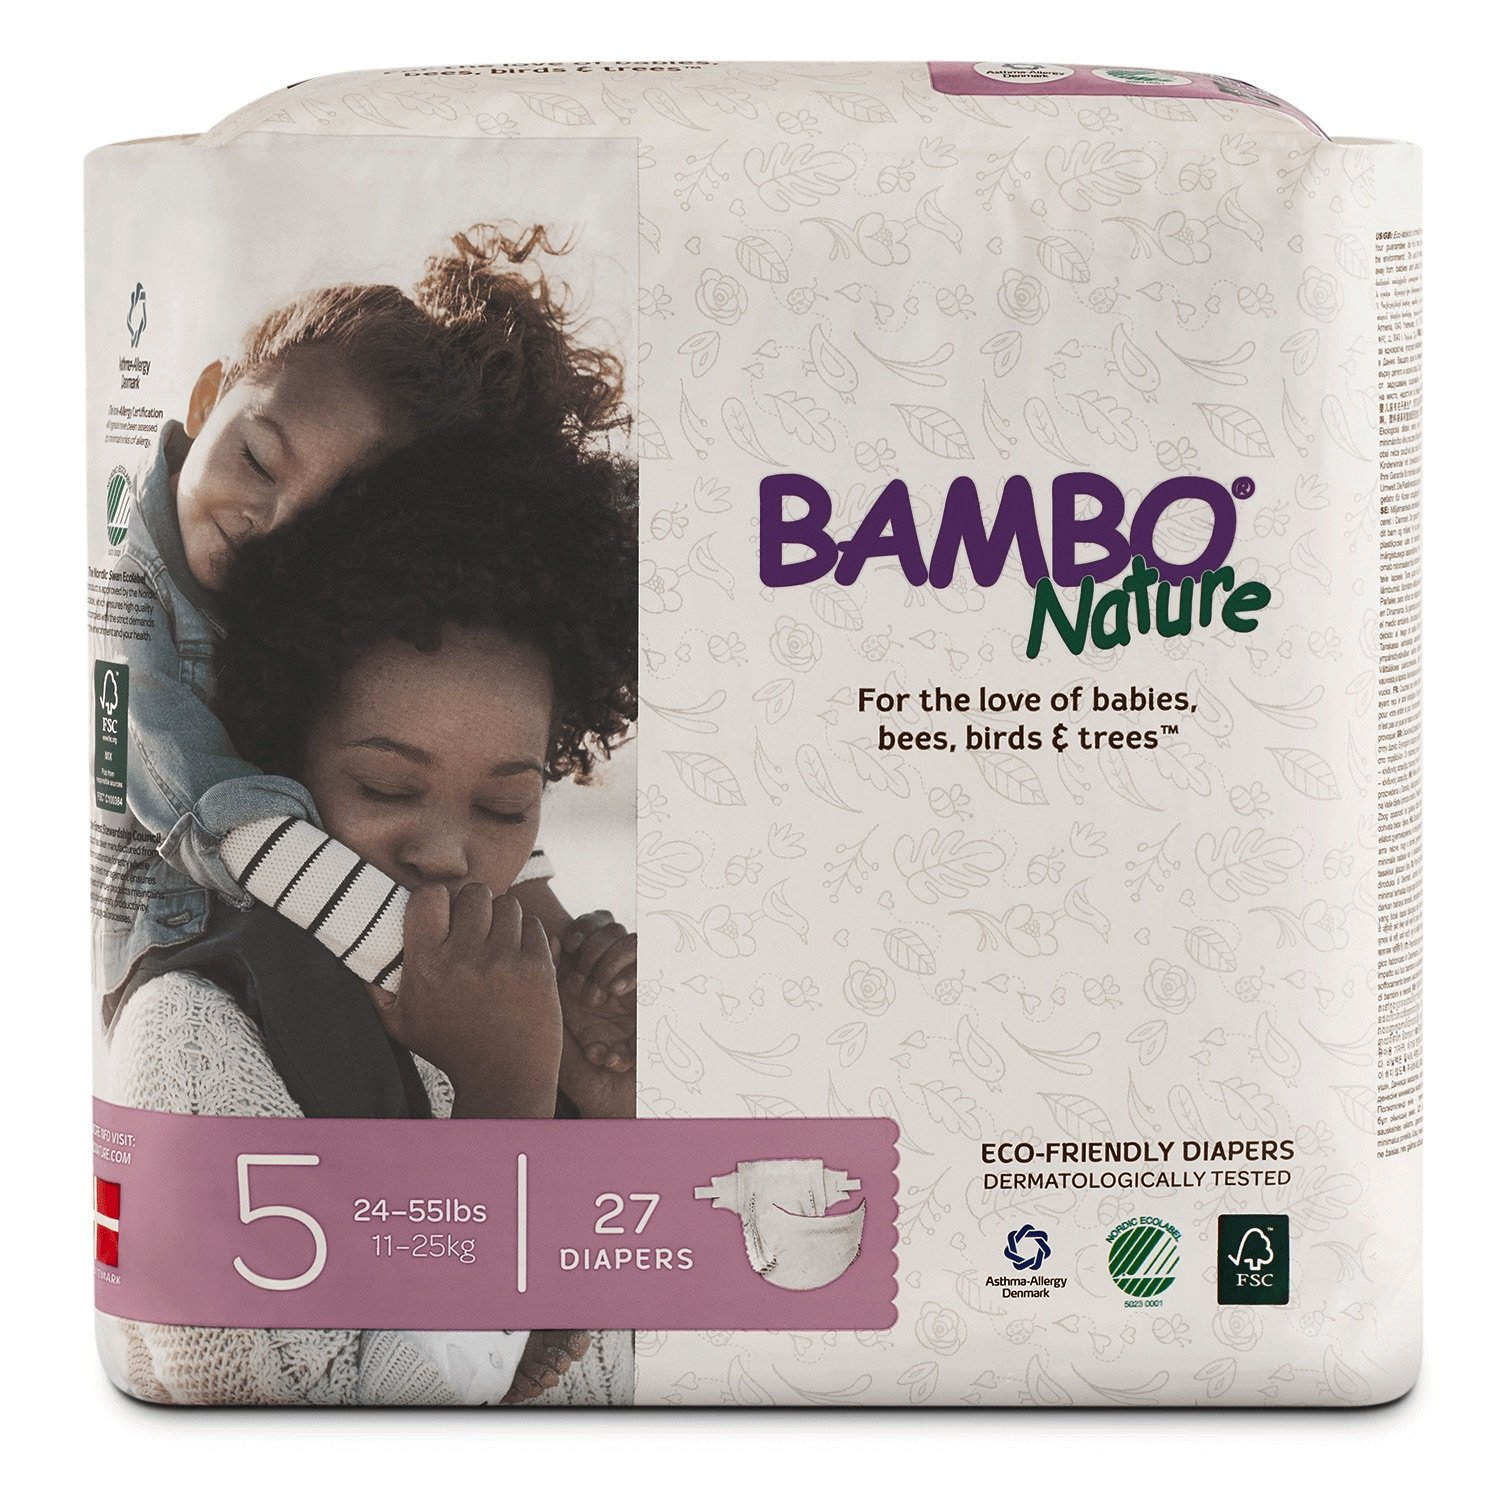 Bambo Nature Eco Friendly Premium Baby Diapers for Sensitive Skin 4-11 lbs Size 1 28 Count